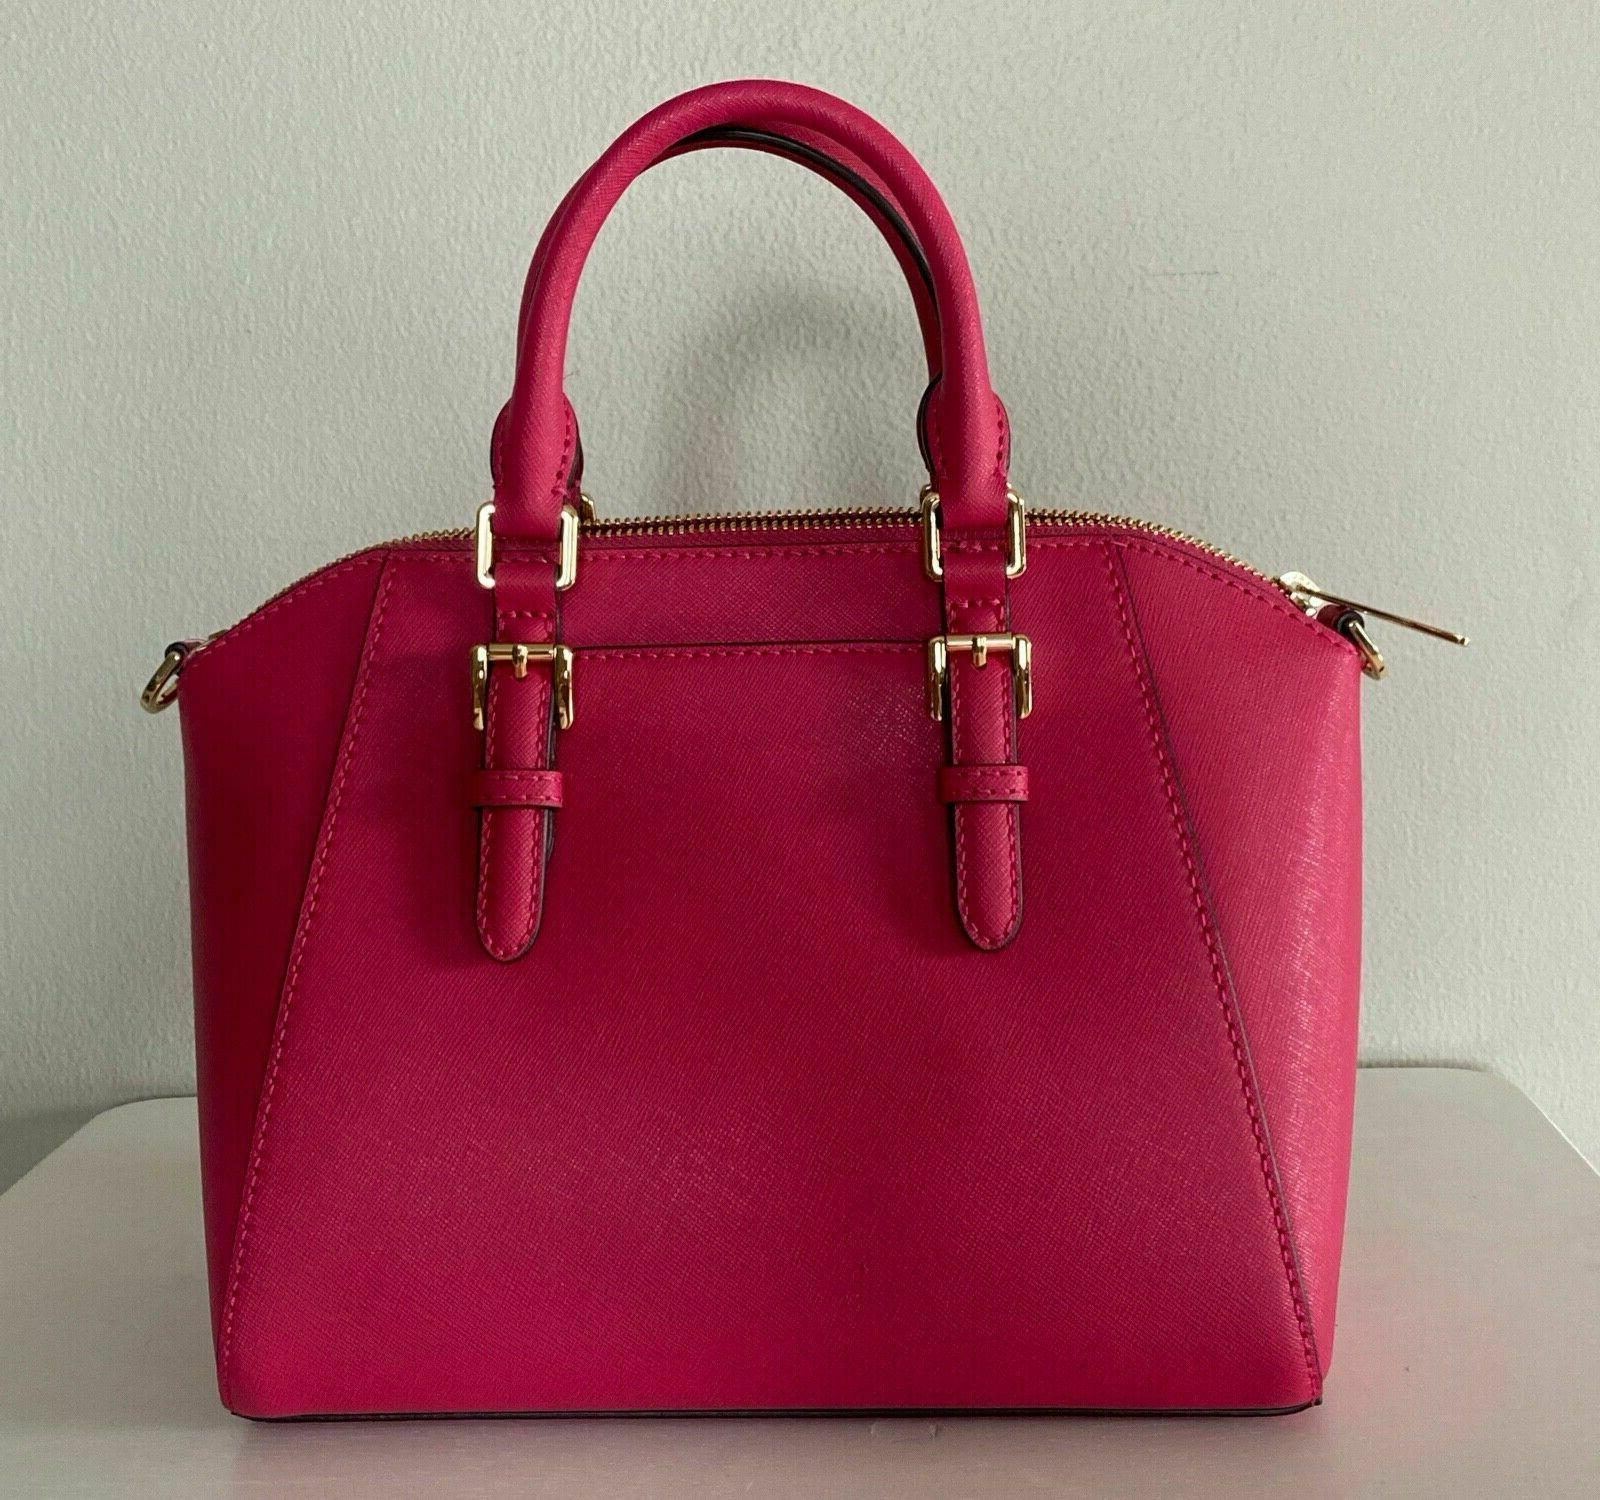 Michael Kors Pink Satchel Bag